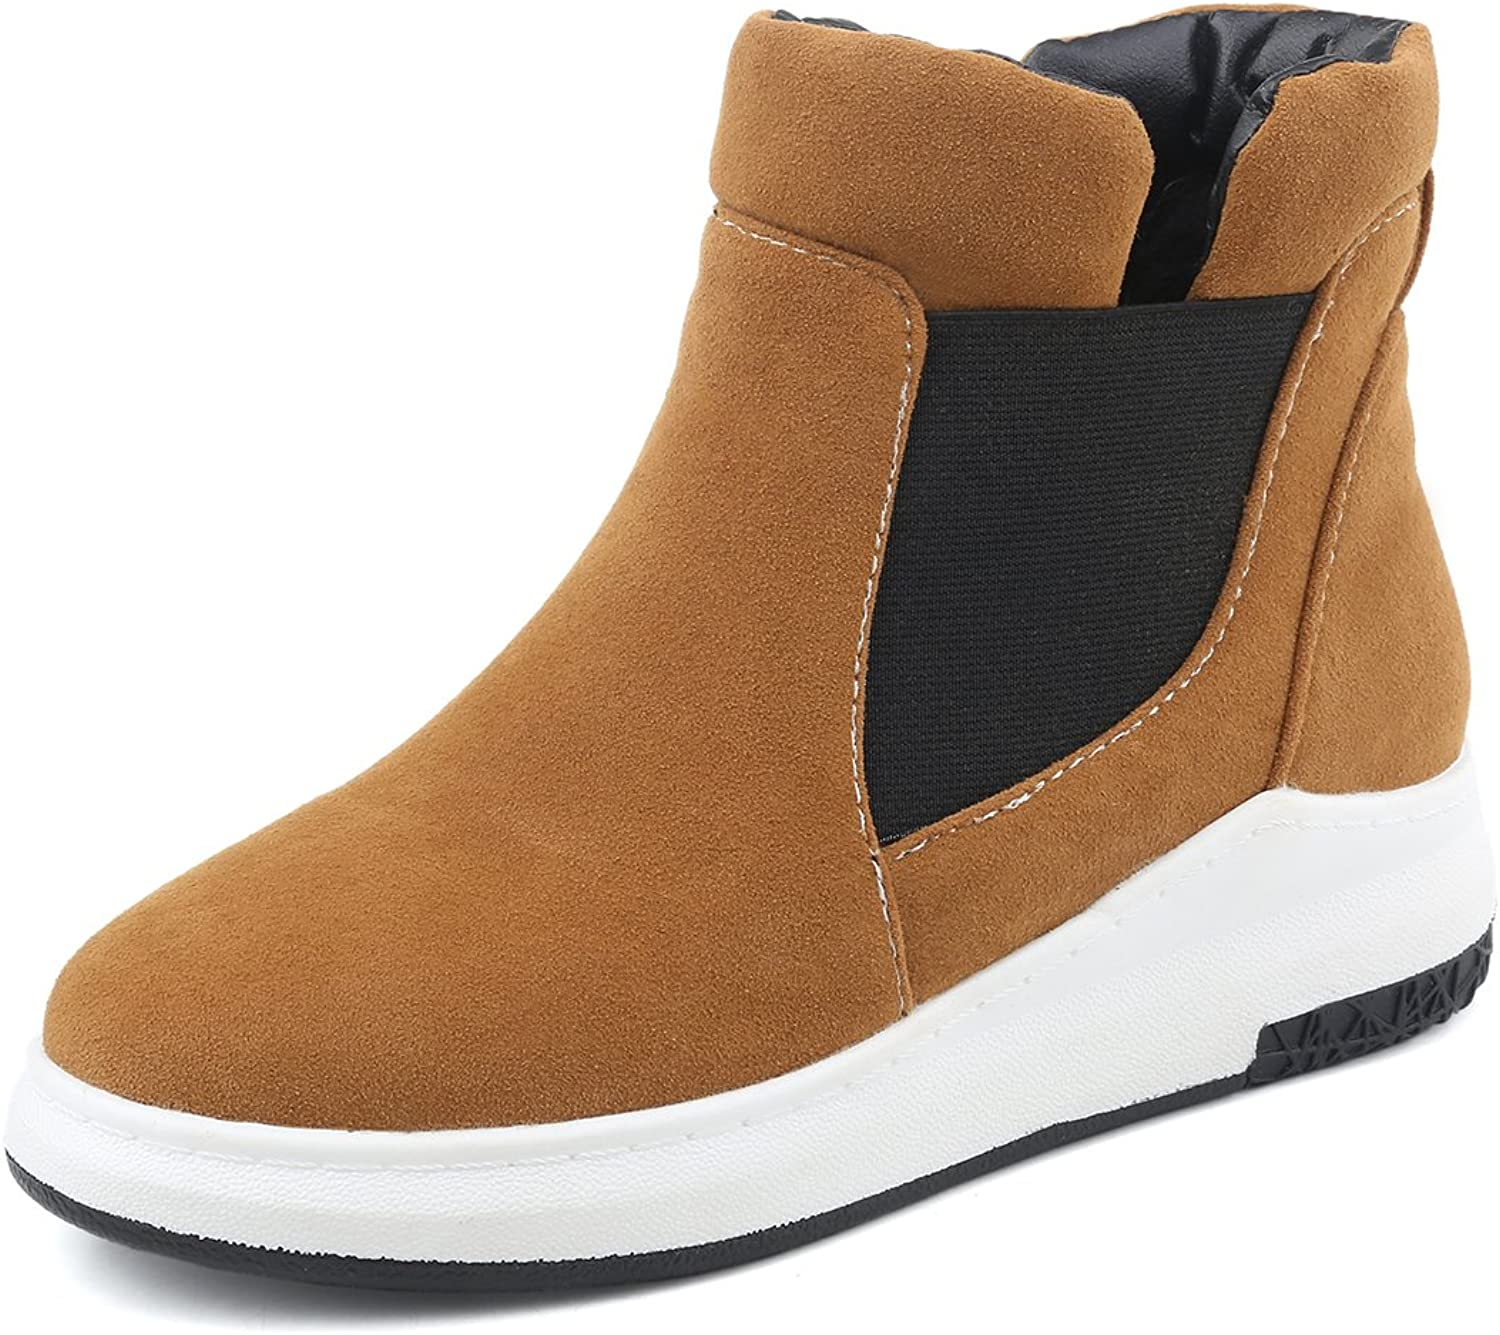 Ladola Womens Closed-Toe Round-Toe Soft-Ground Comfort Casual Synthetic Boots